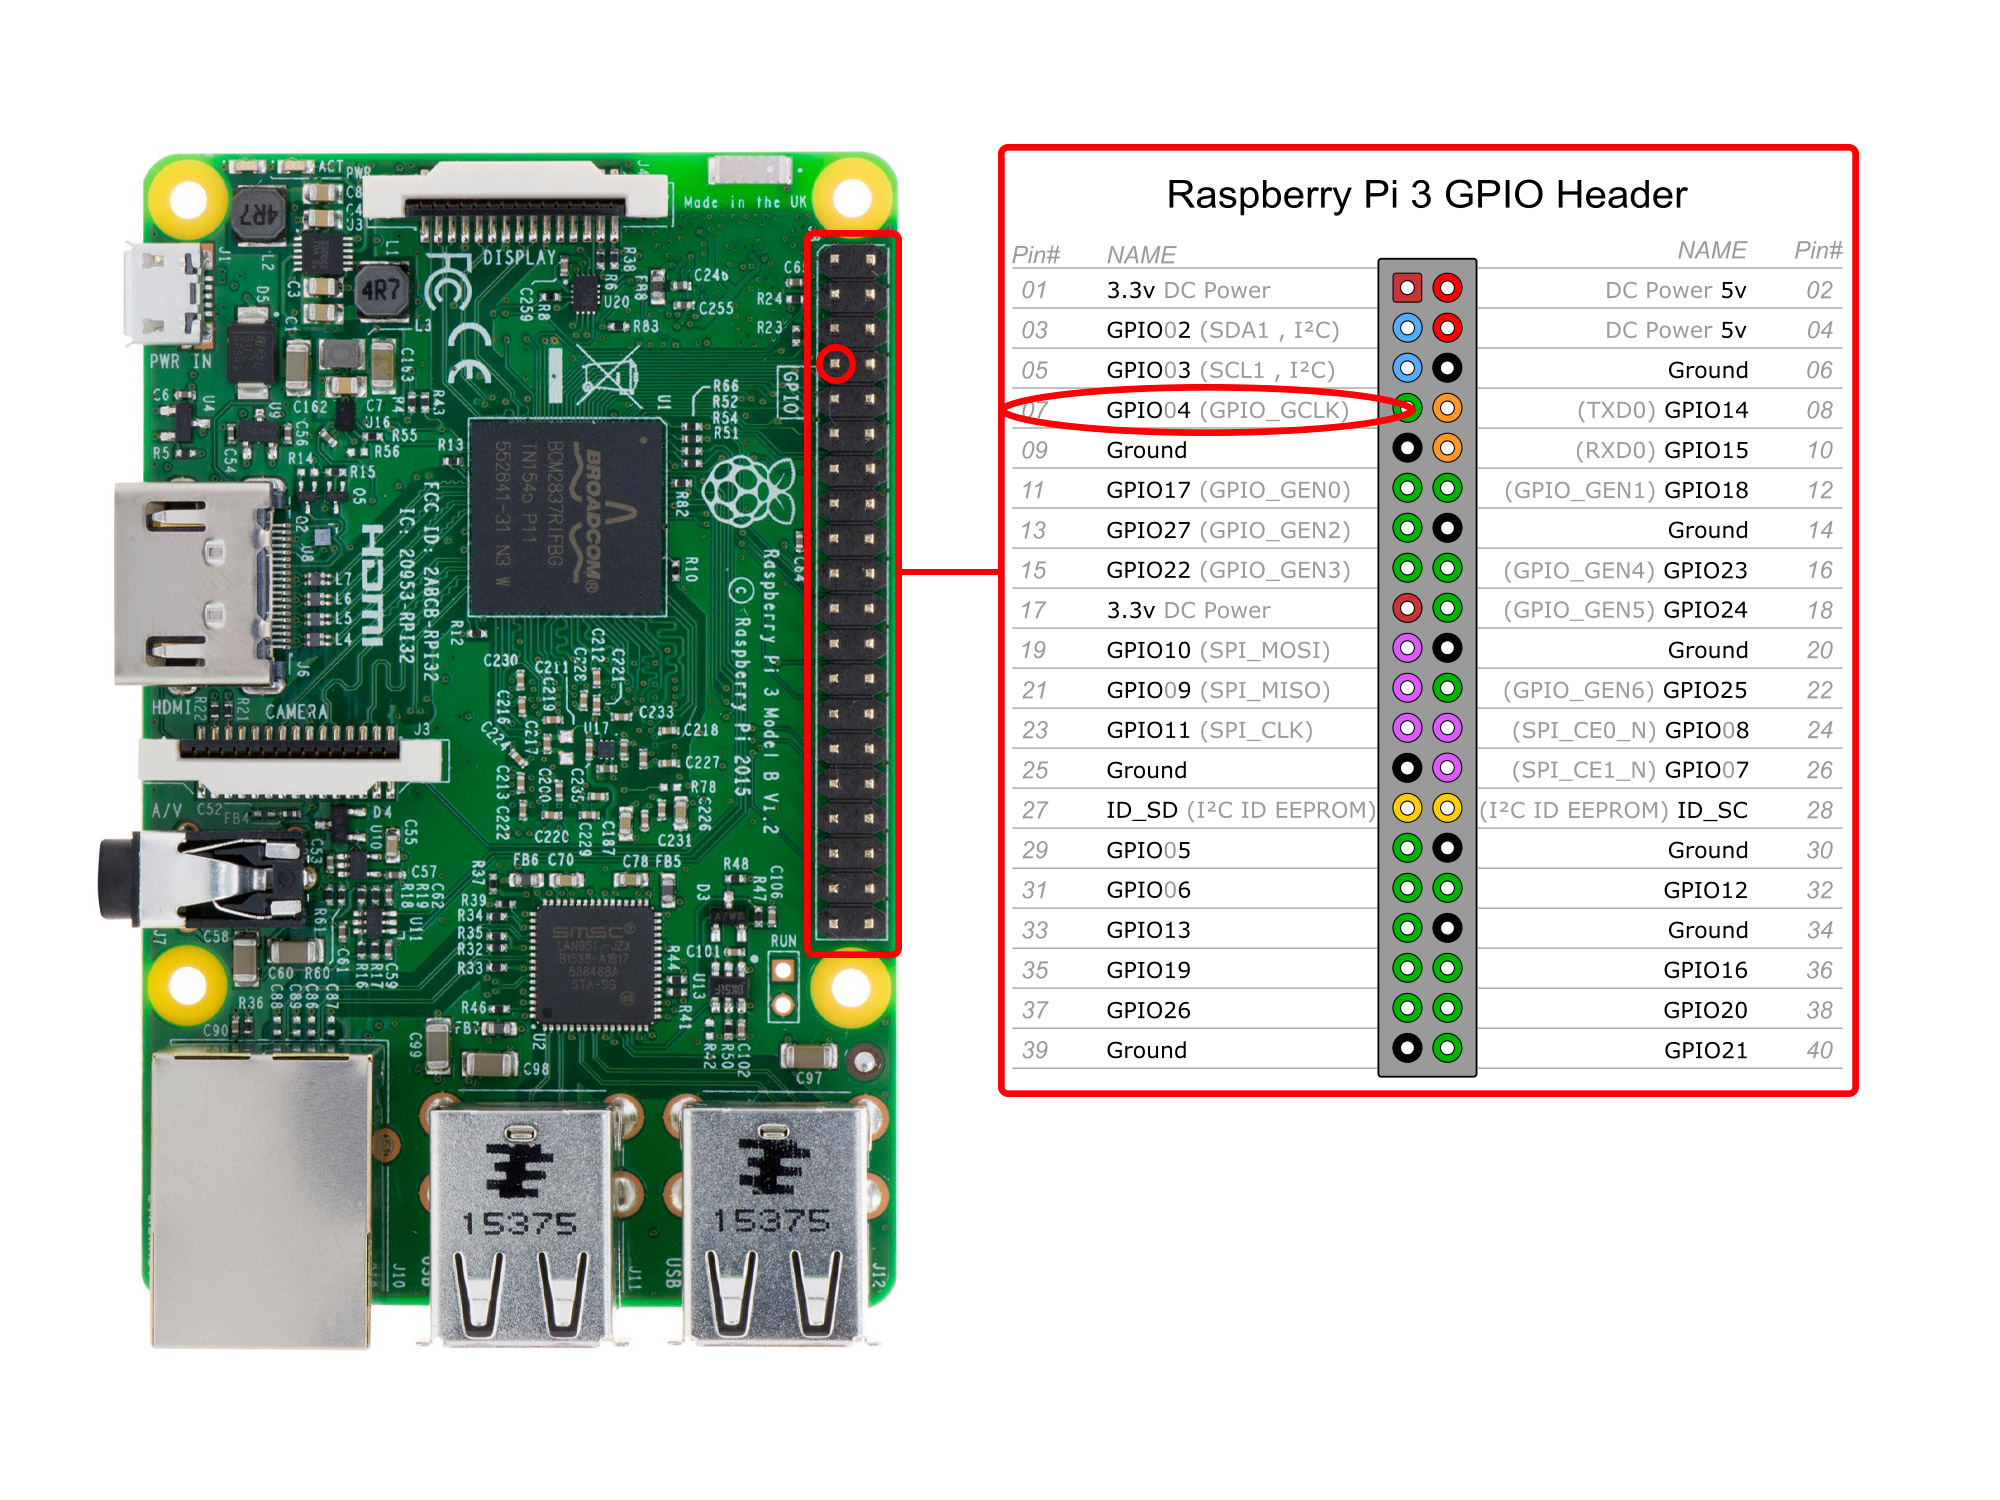 GPIO port to use to create a radio with Raspberry Pi